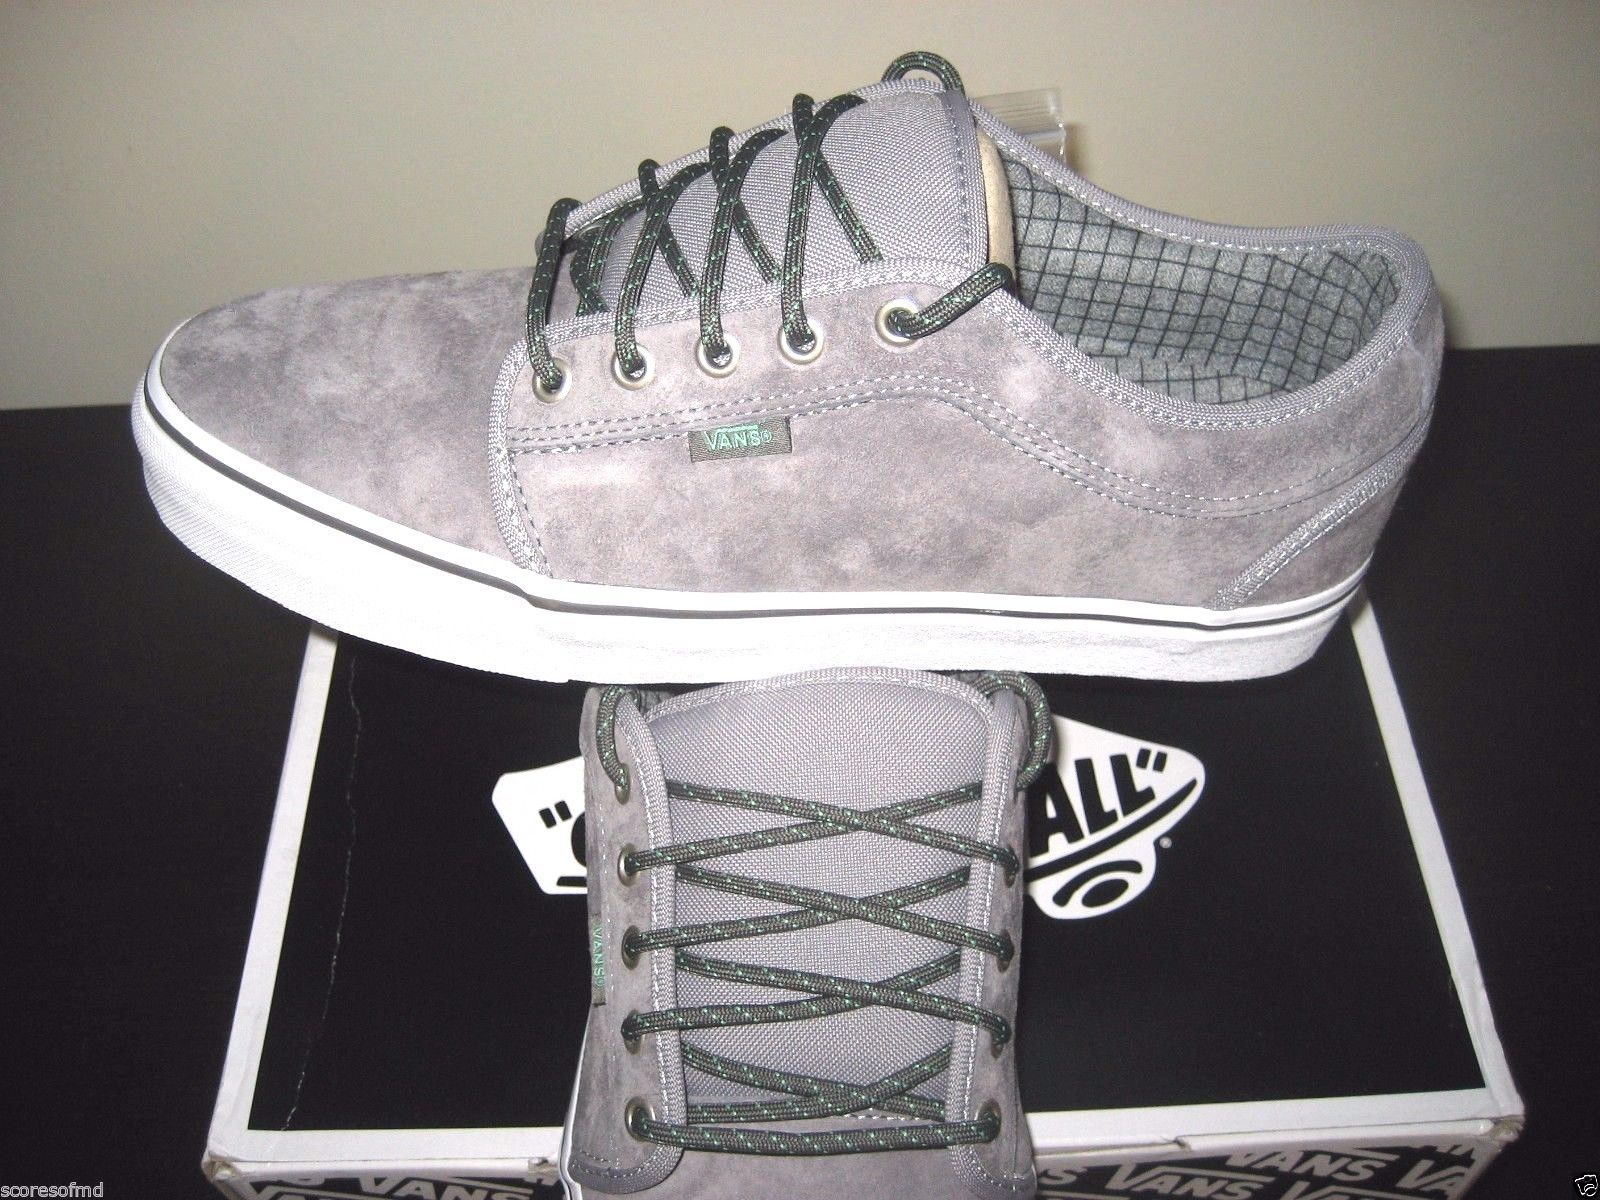 6246eb8c51 Vans Chukka Low Hiker Grey Mint Suede Canvas Skate Shoes Size 8 VN-0UOG9VY